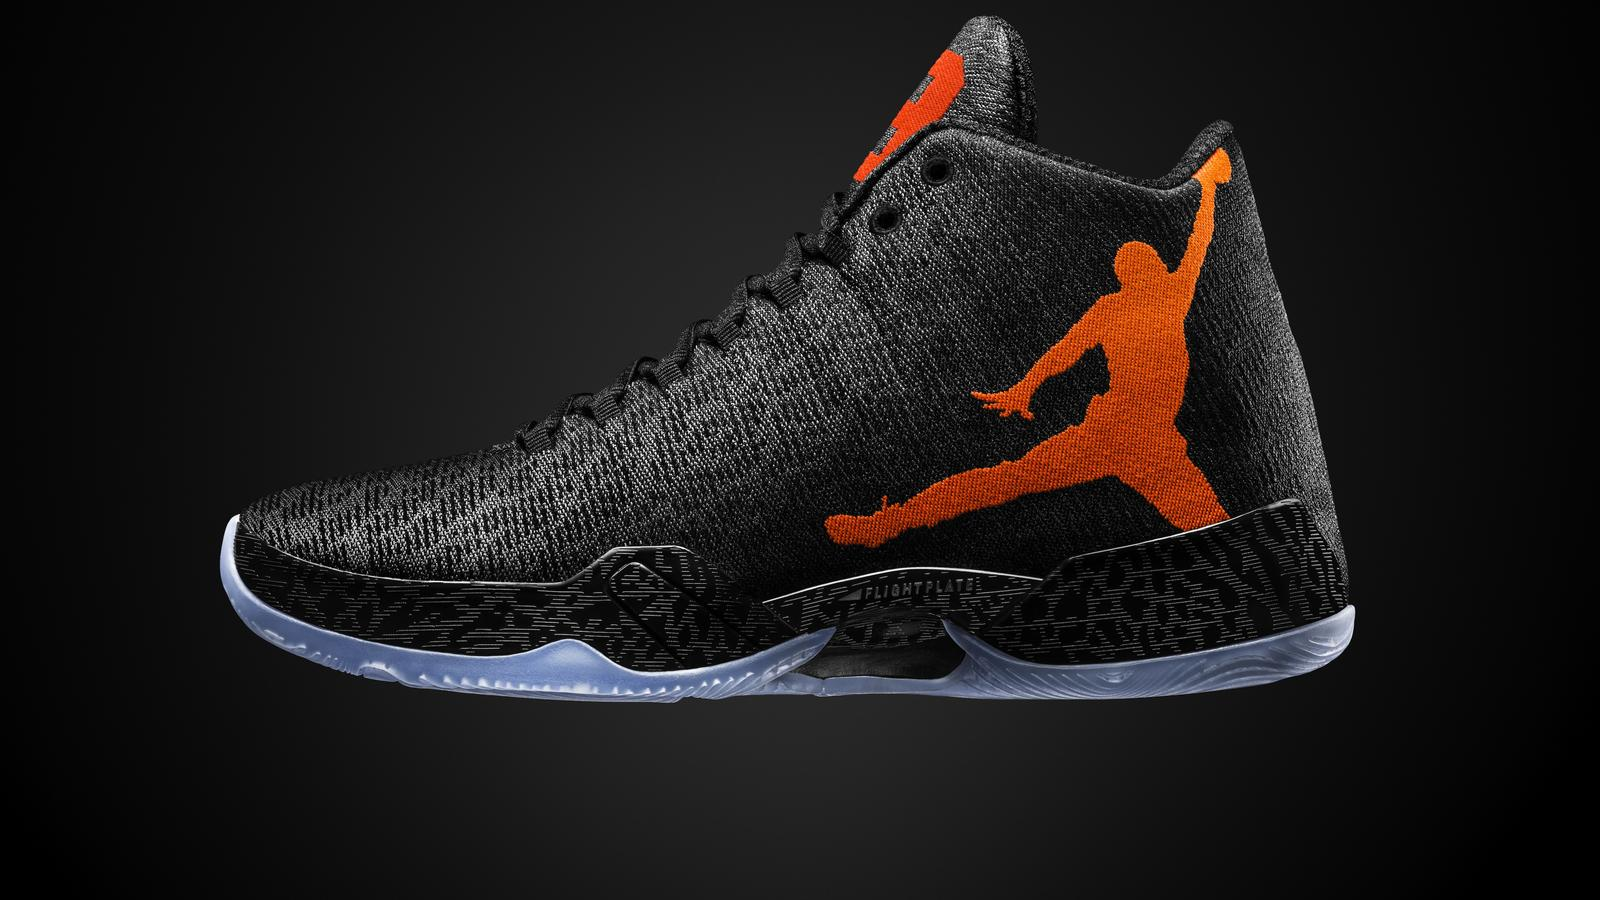 new styles 2d93b f5b03 Jordan Brand Introduces First Performance-woven Upper with ...